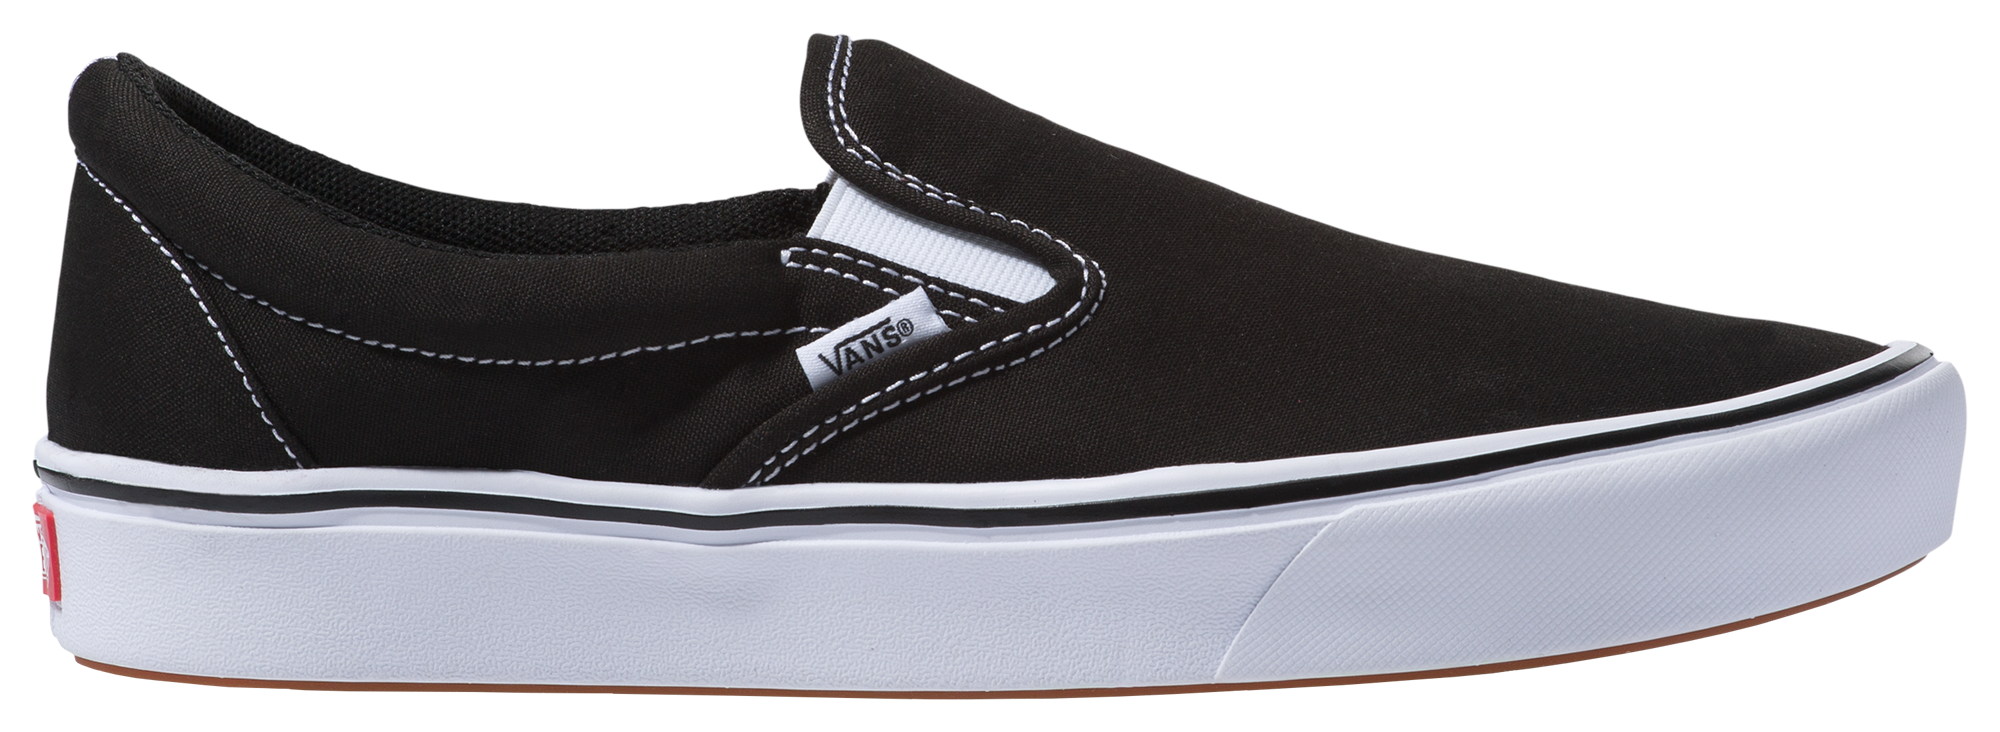 where to buy vans canada